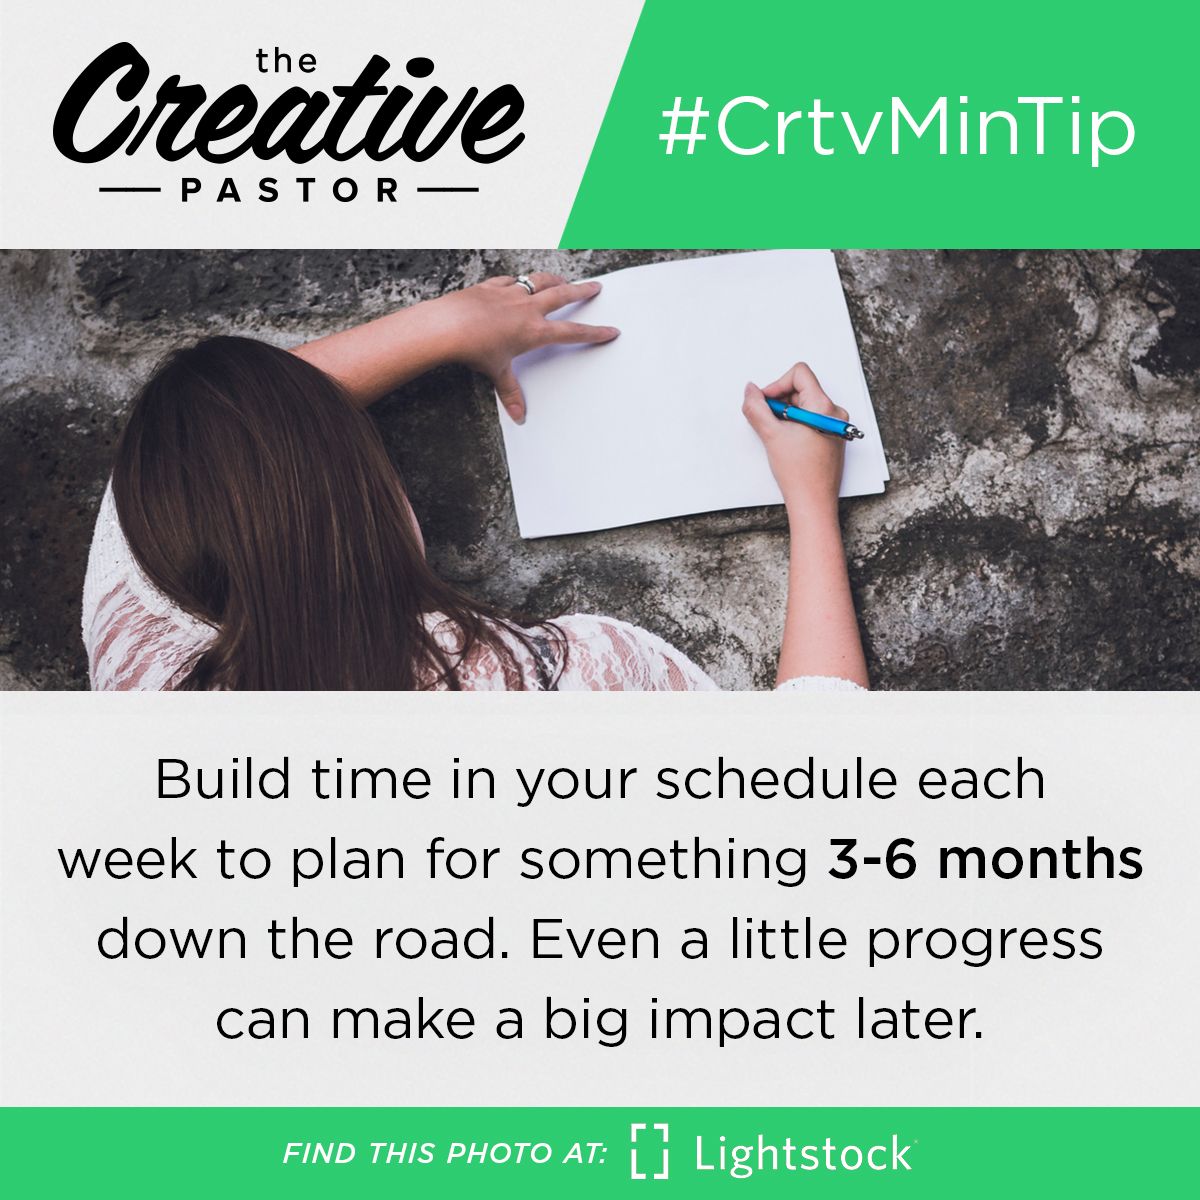 #CrtvMinTIp: Build time in your schedule each week to plan for something 3-6 months down the road. Even a little progress can make a big impact later.